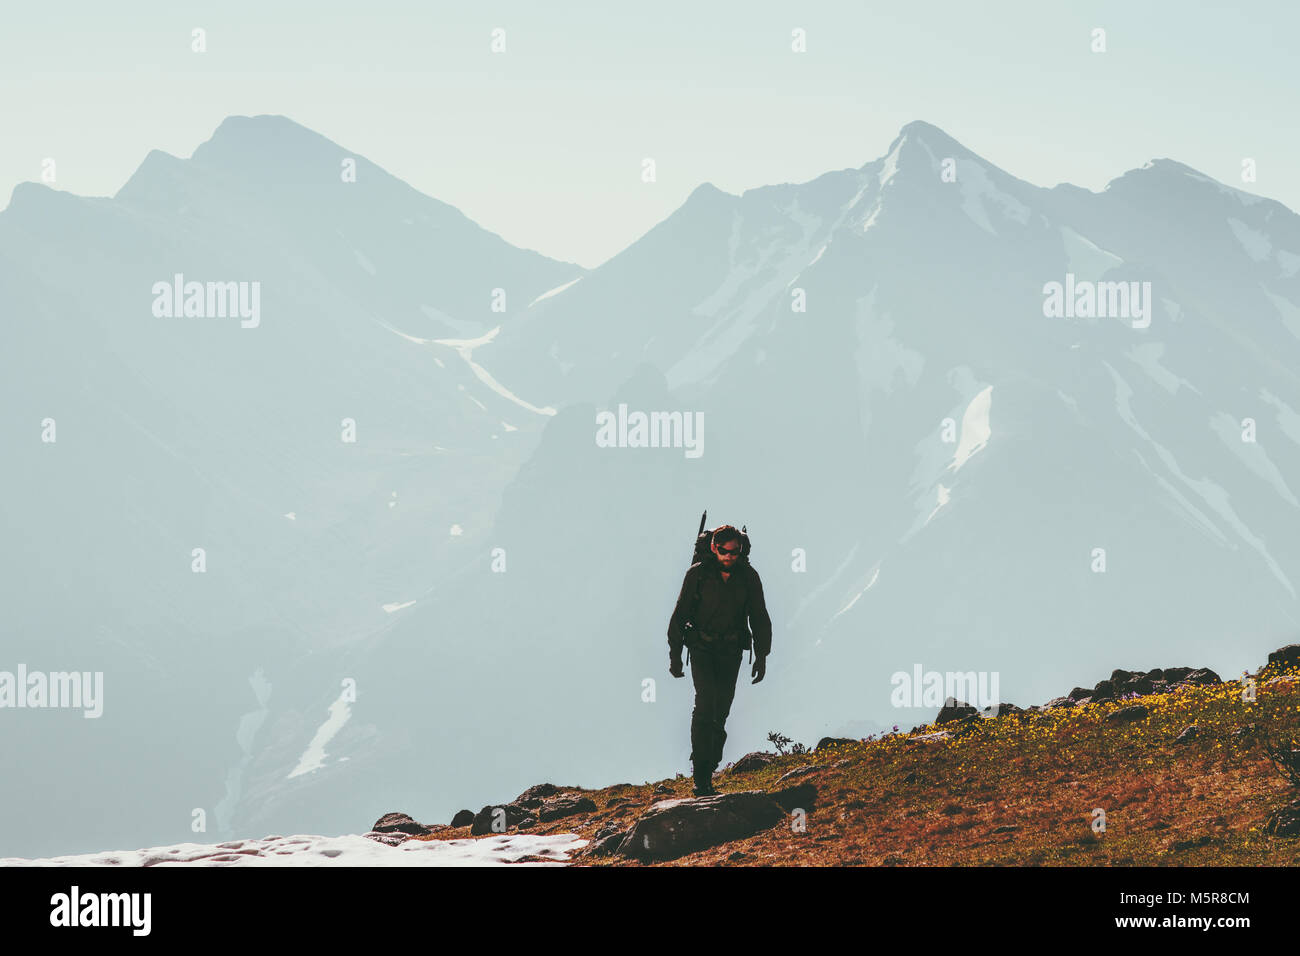 Hiker Man alone climbing in mountains  Lifestyle travel survival concept adventure outdoor active vacations trekking - Stock Image